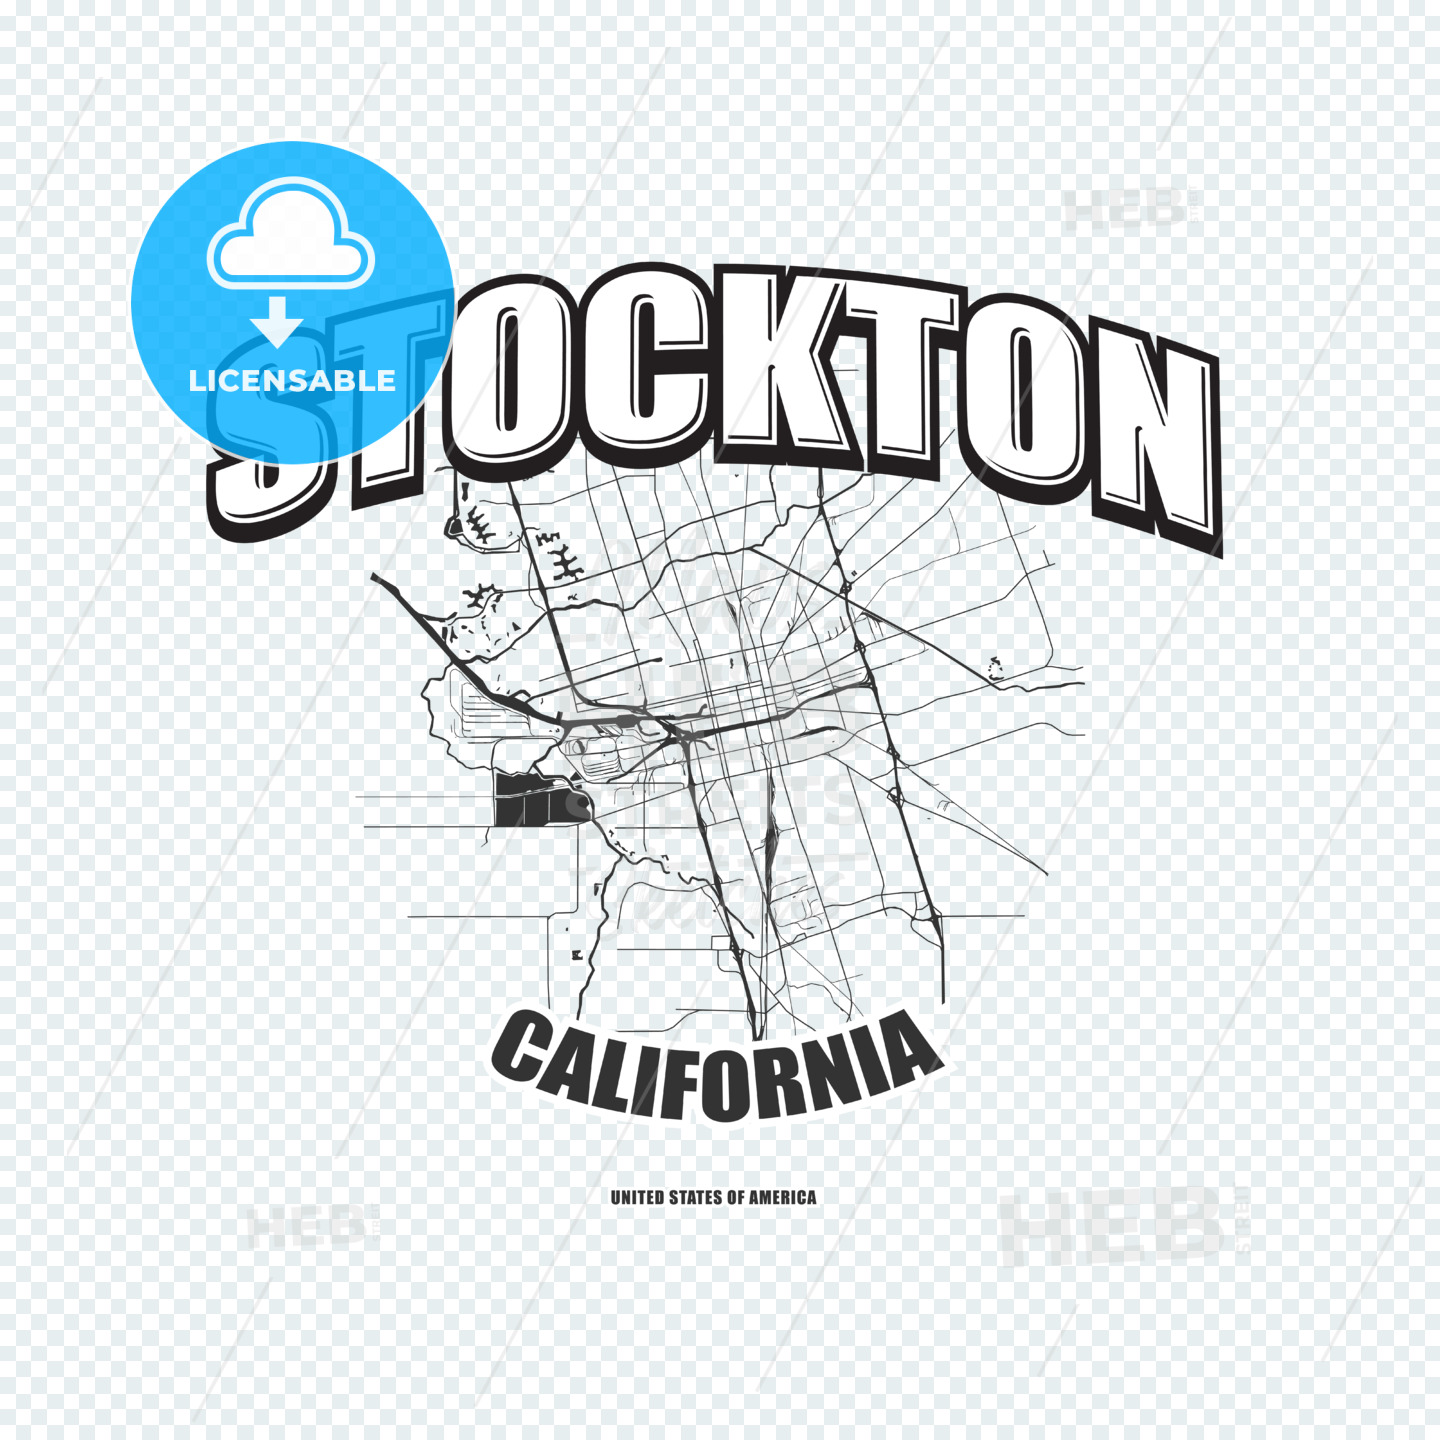 Stockton, California, logo artwork